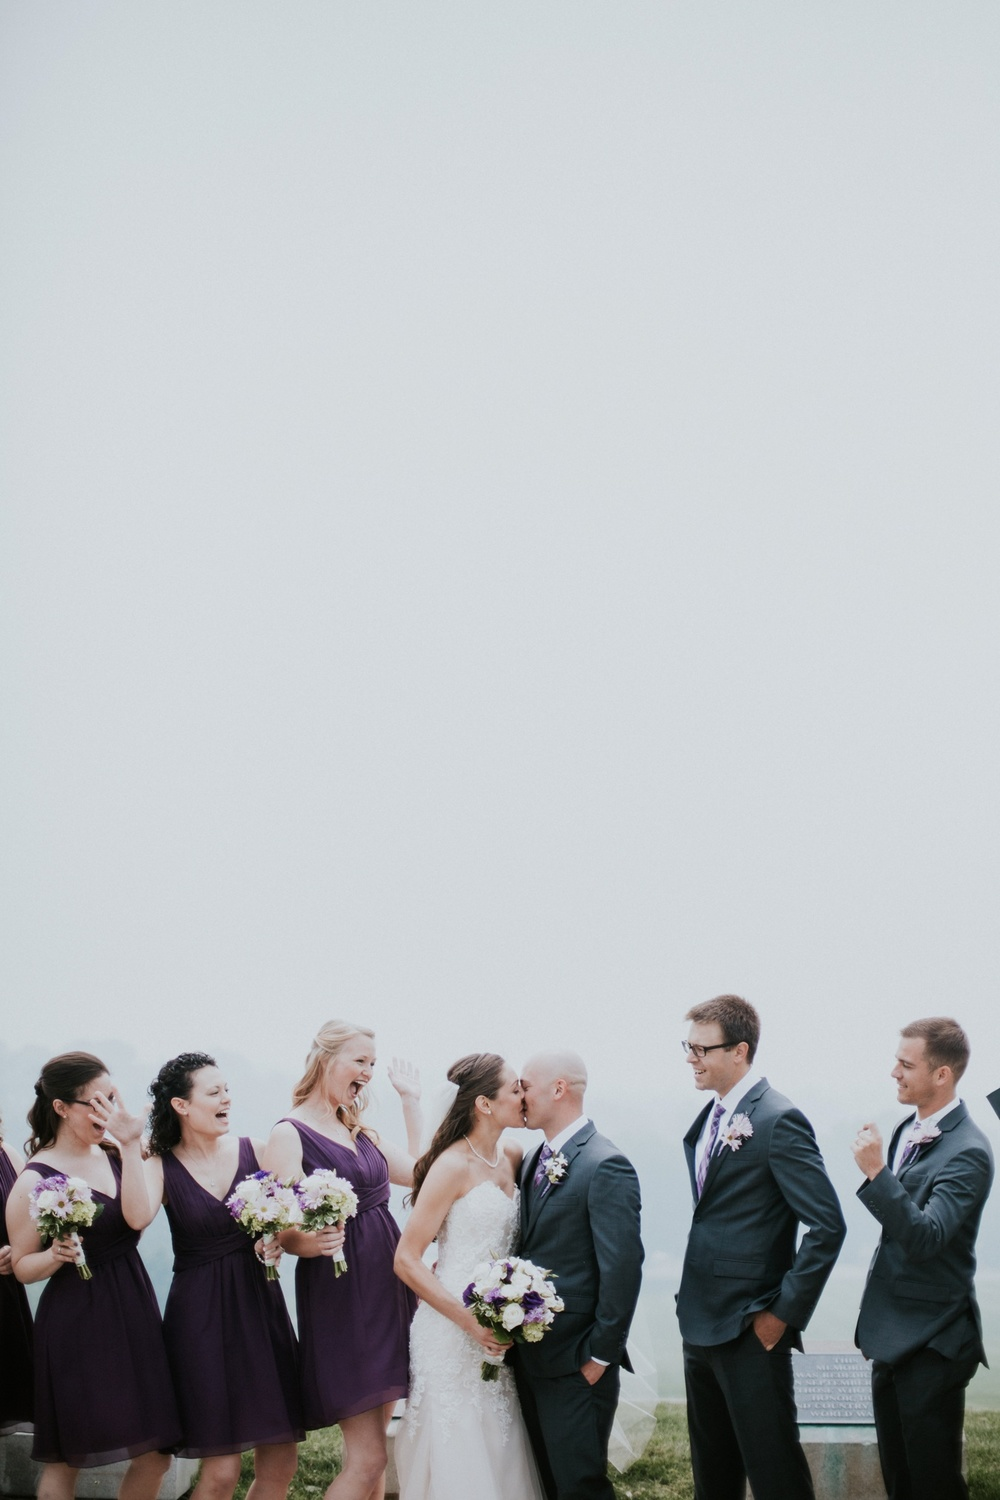 morgan+john_wedding-166_WEB.jpg